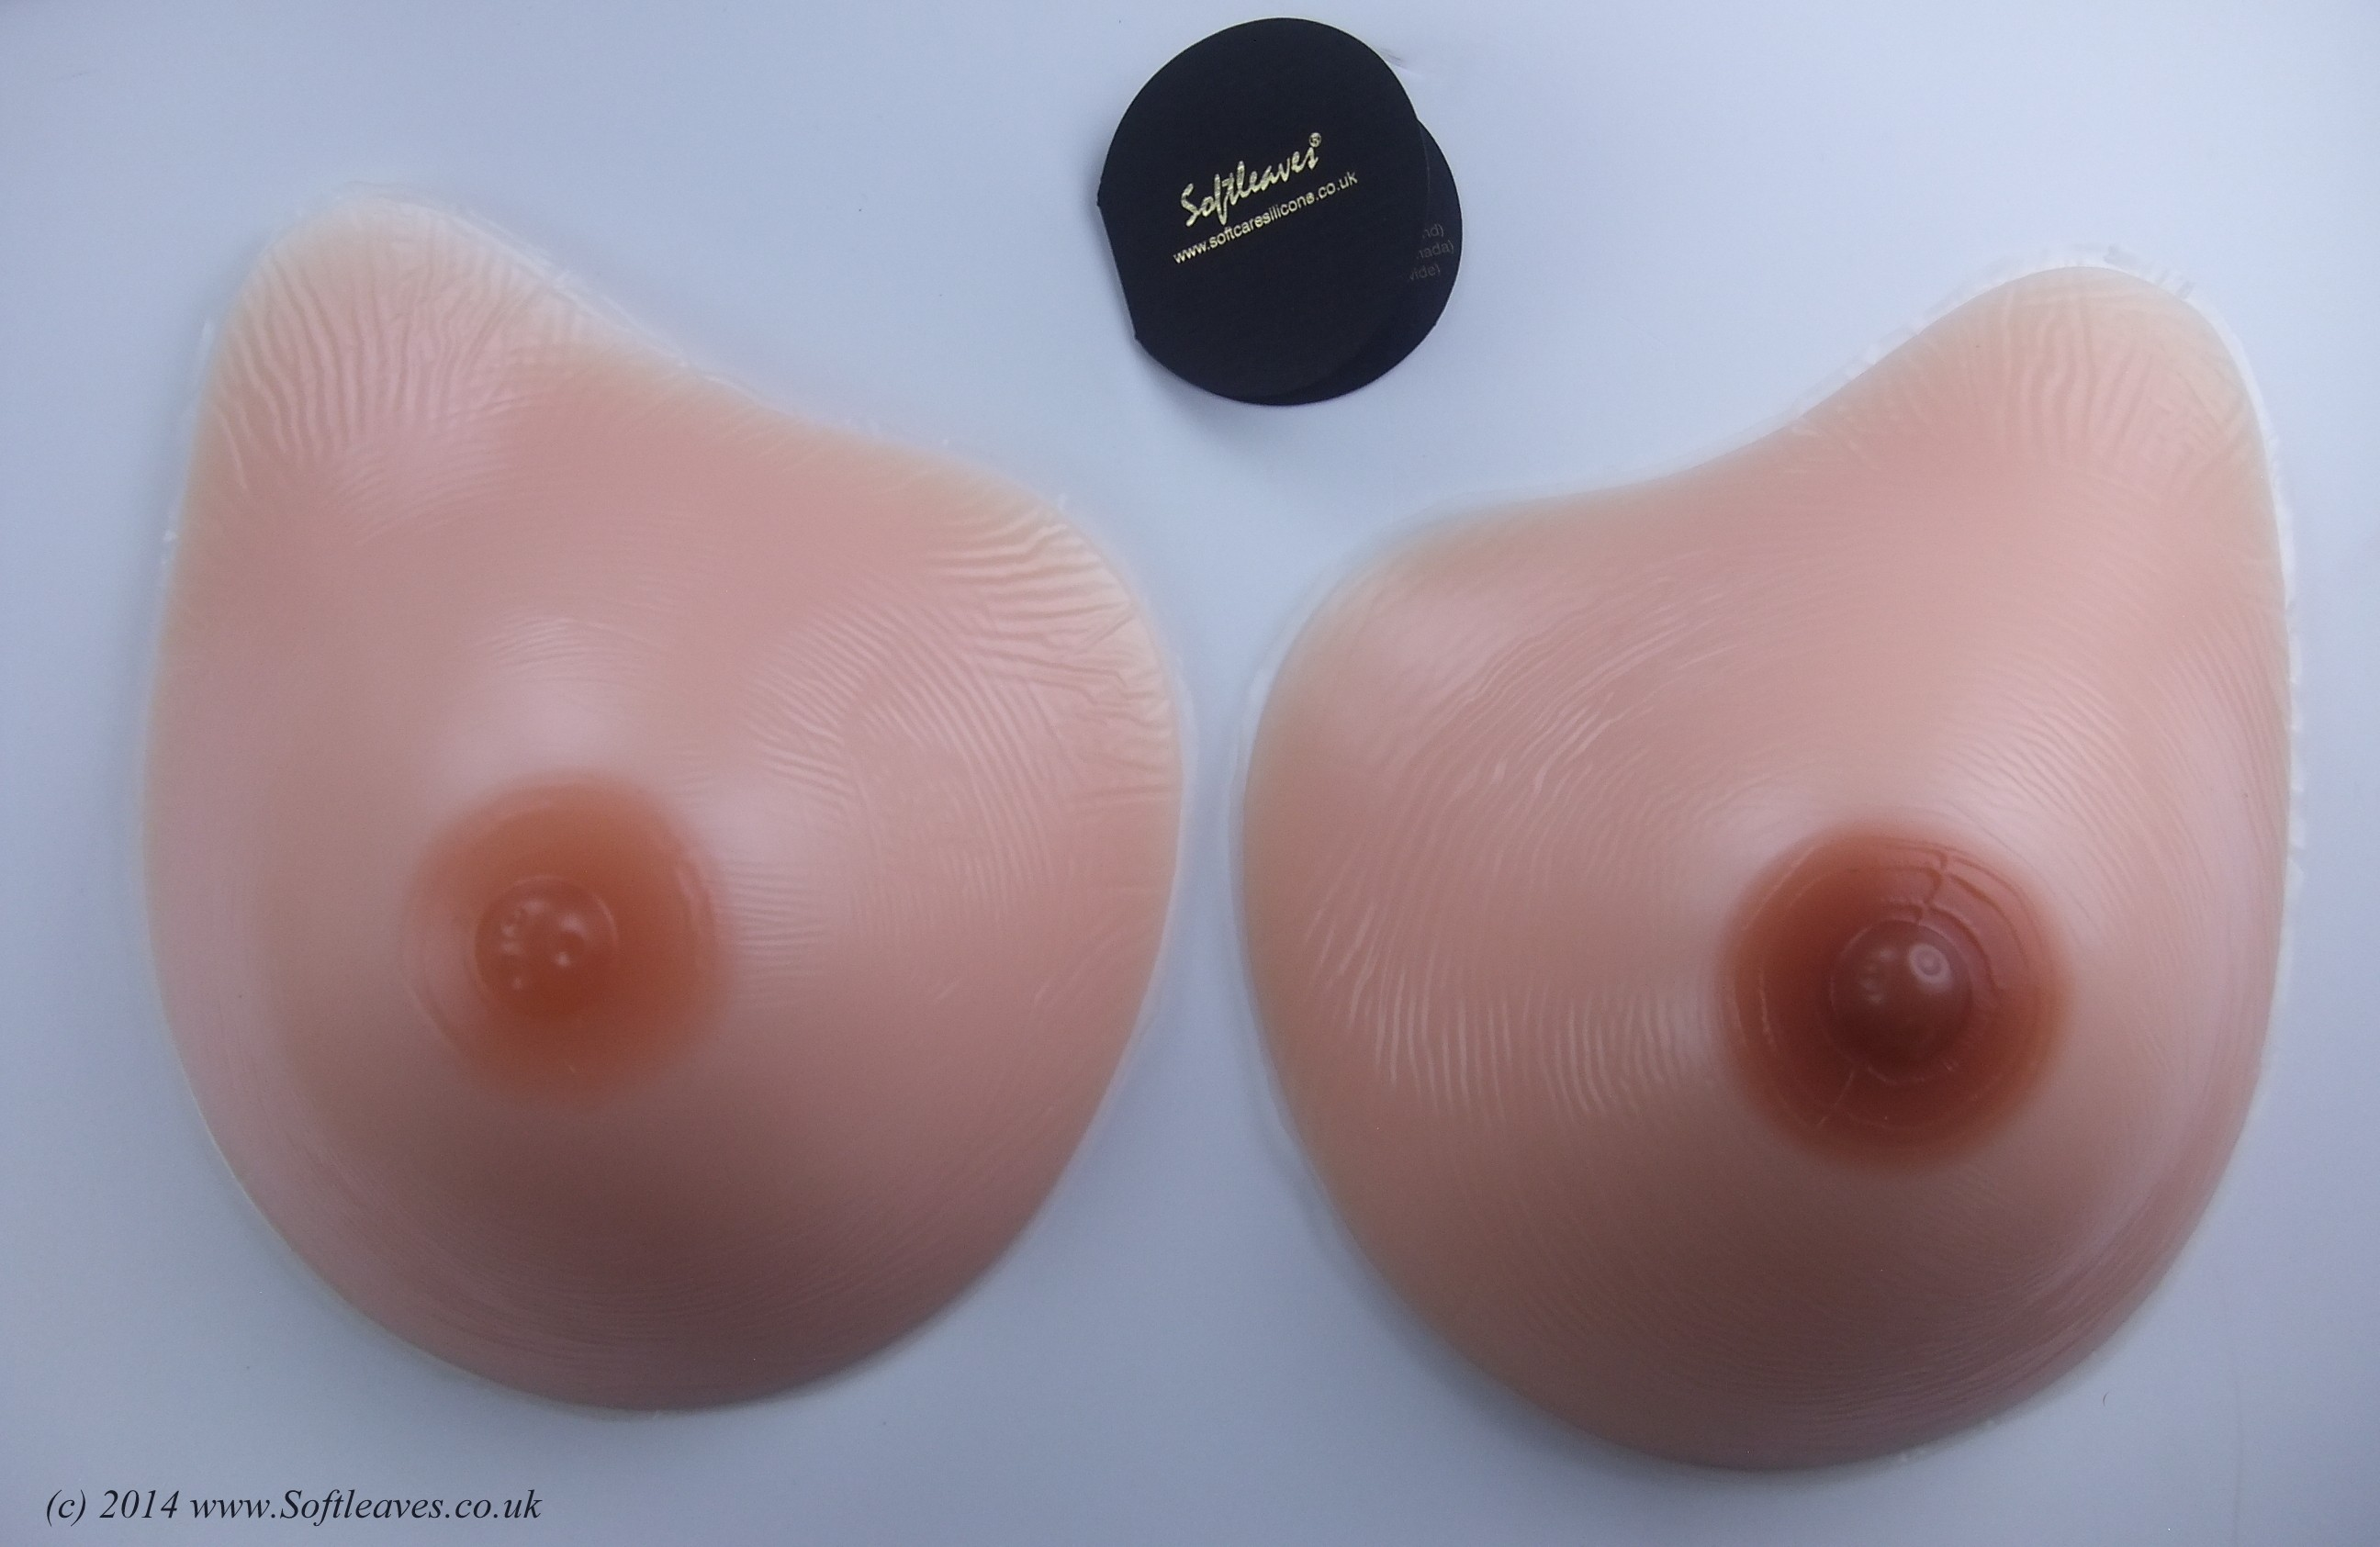 Softleaves N100 Silicone Breast Forms with Dark Nipples